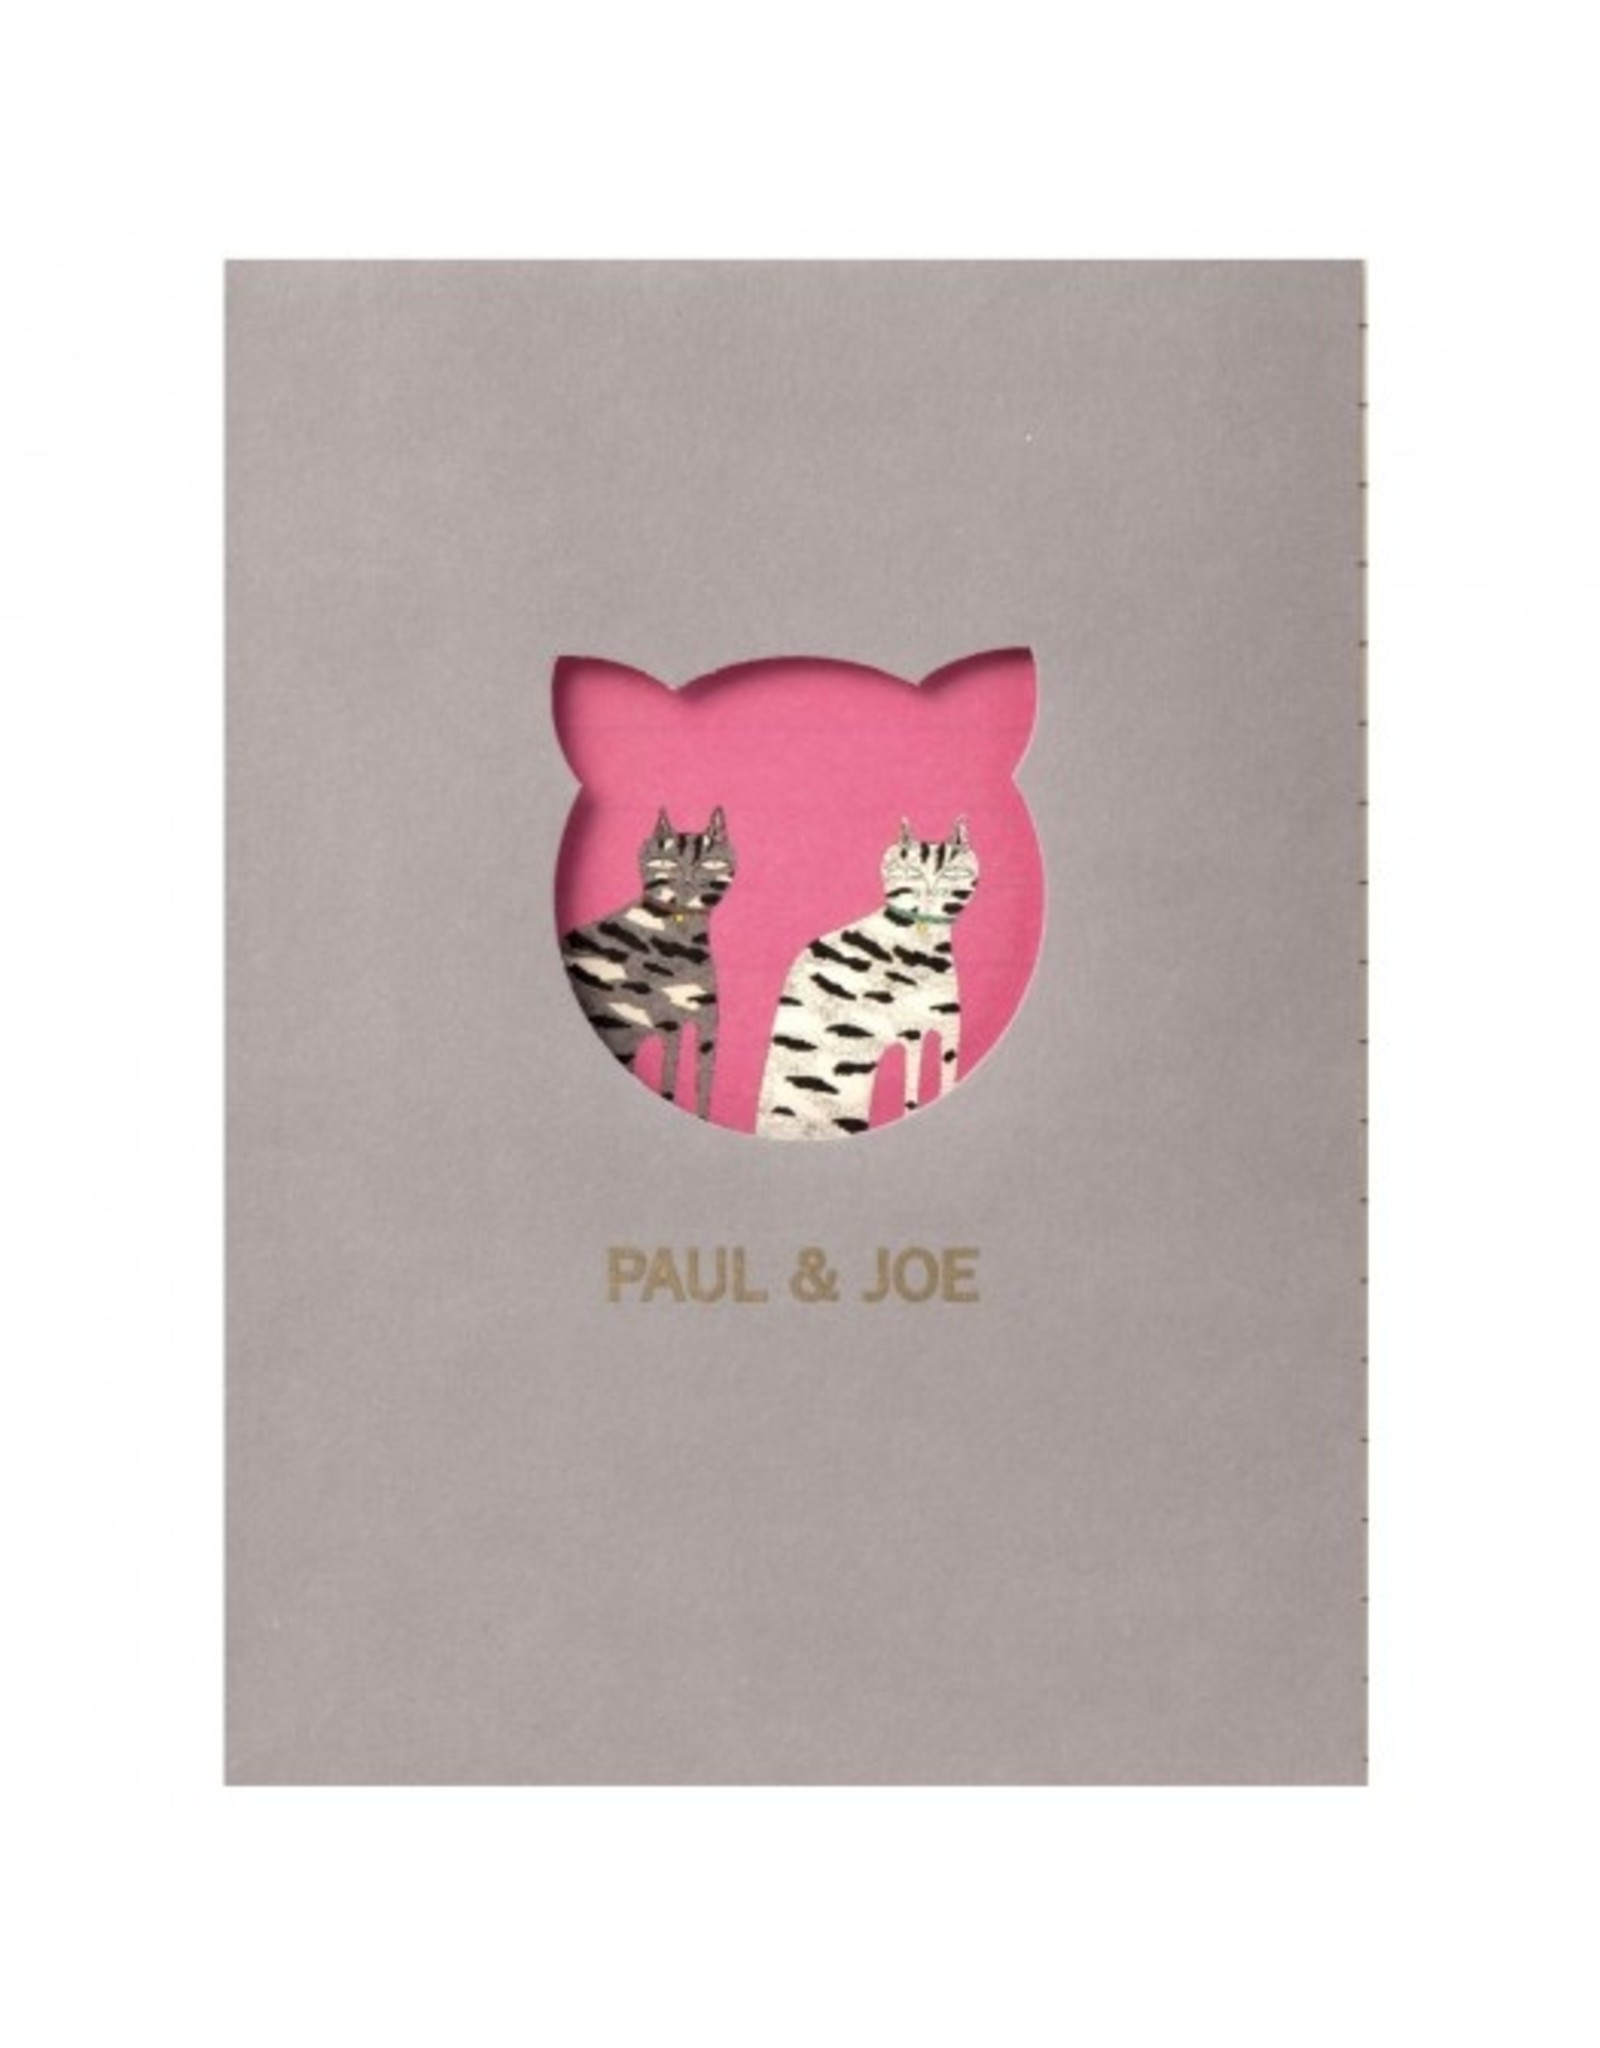 Paul & Joe PAUL & JOE - Notebook A6 - getekende kat donkerroze